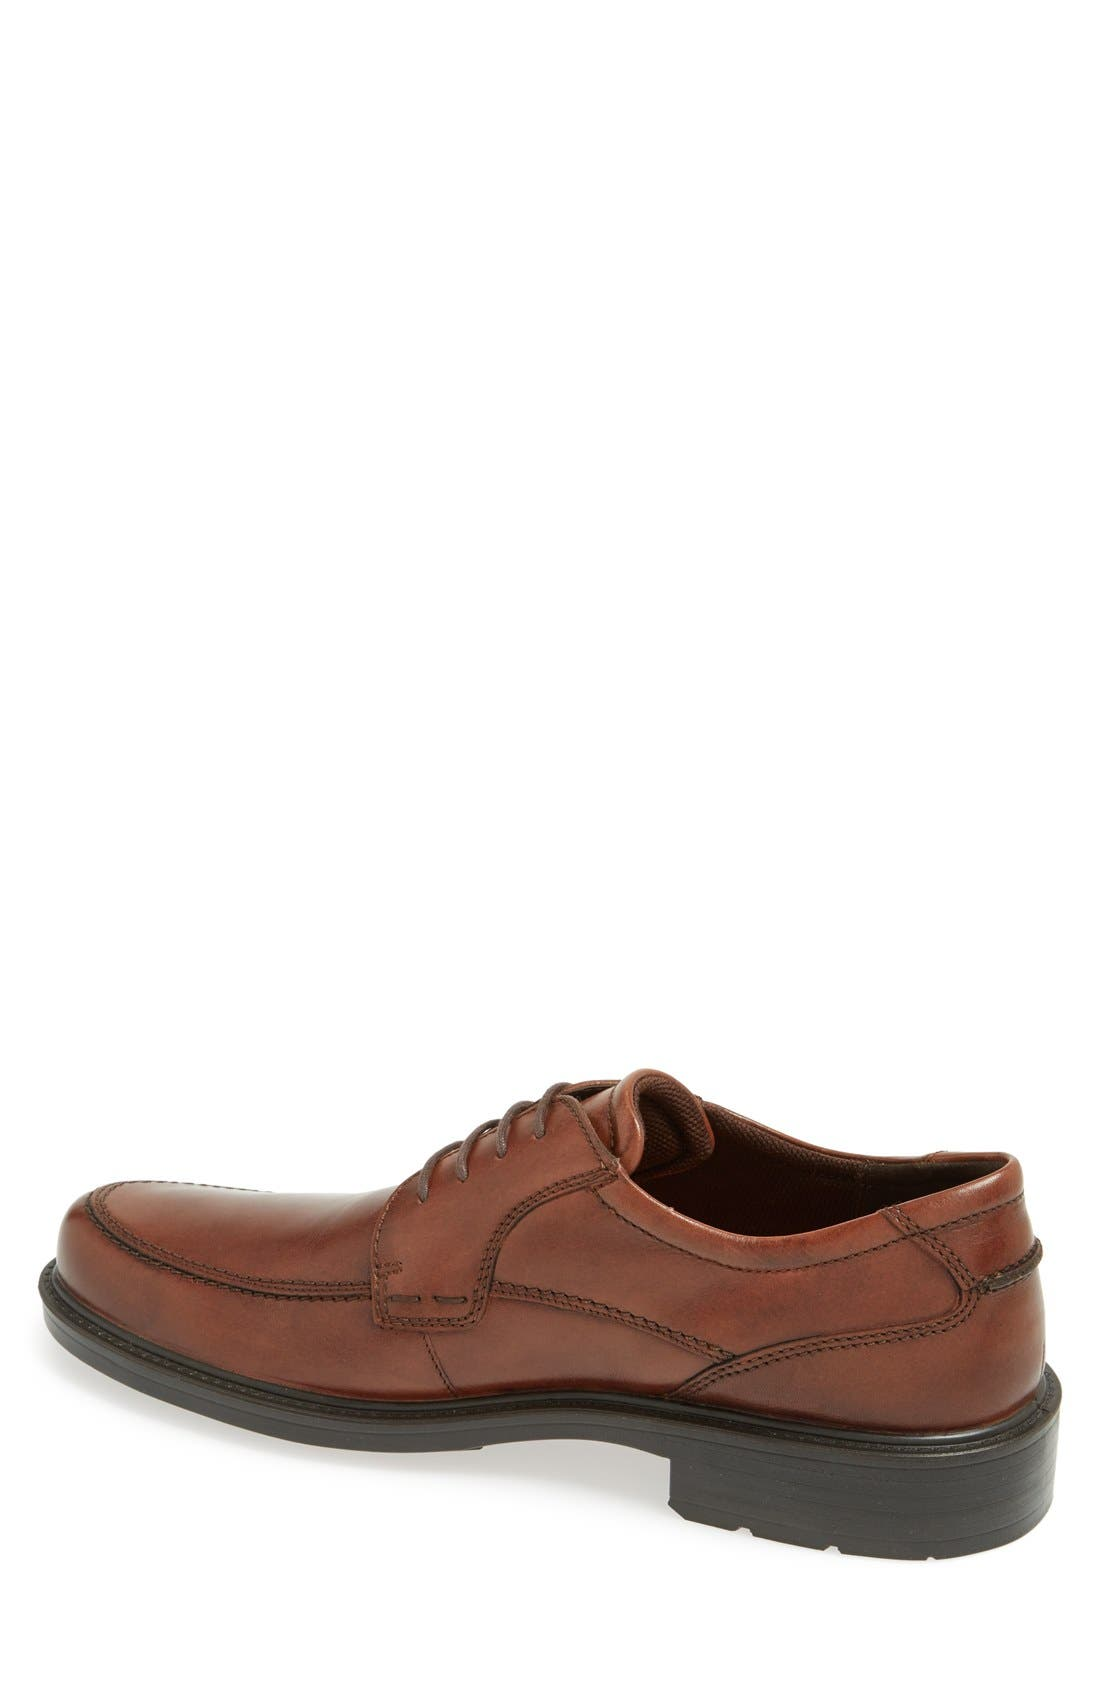 Alternate Image 2  - ECCO 'Boston' Oxford (Men)